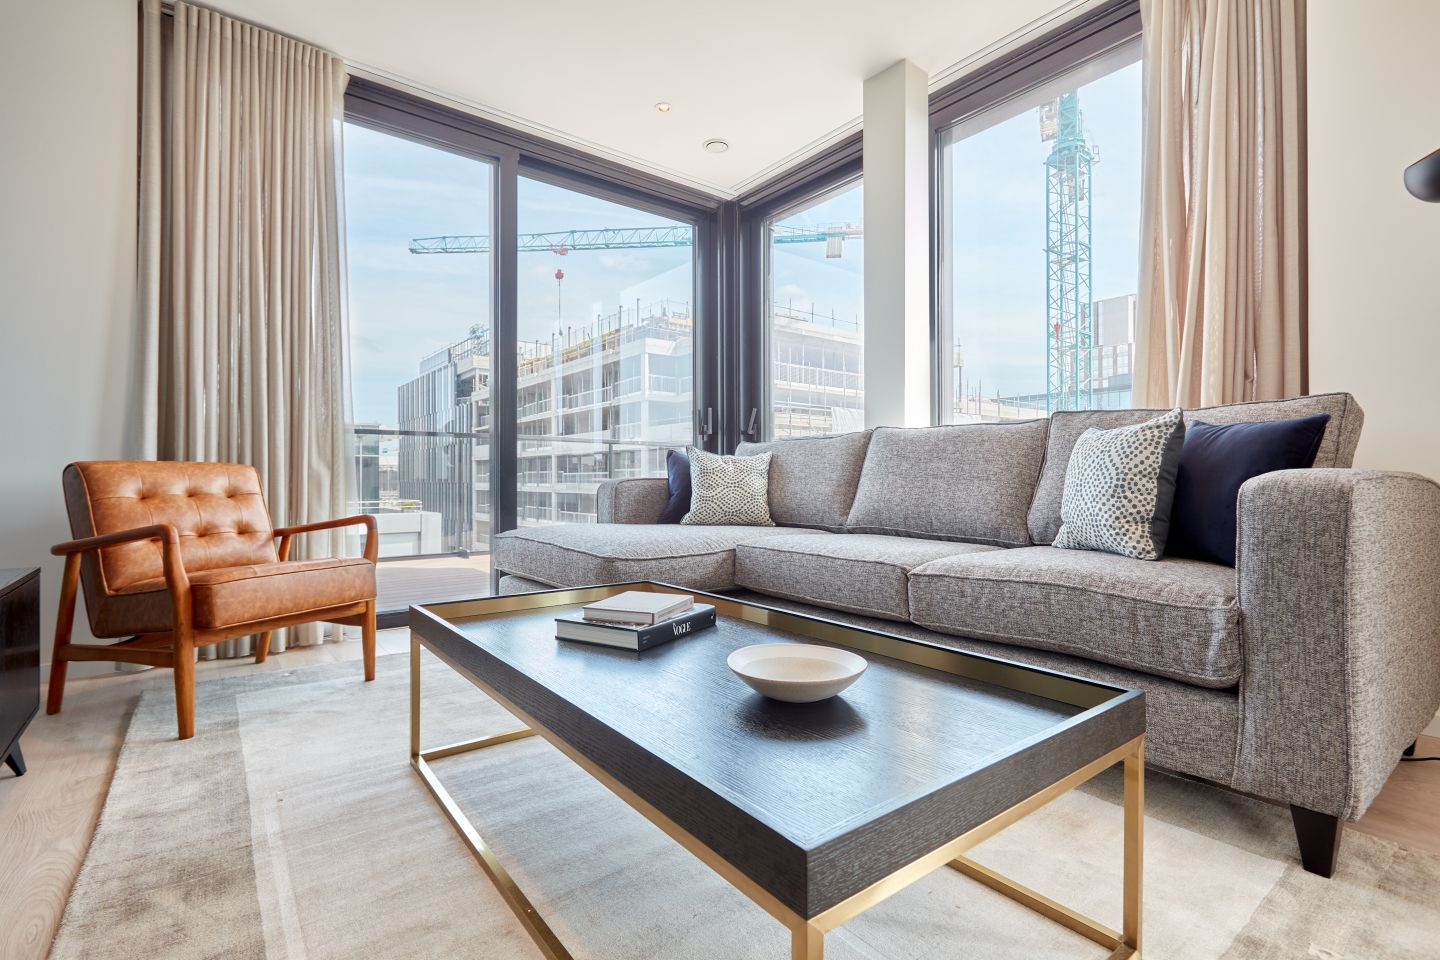 Long rectangular coffee table & grey couch of a Dublin serviced apartment by Sonder.